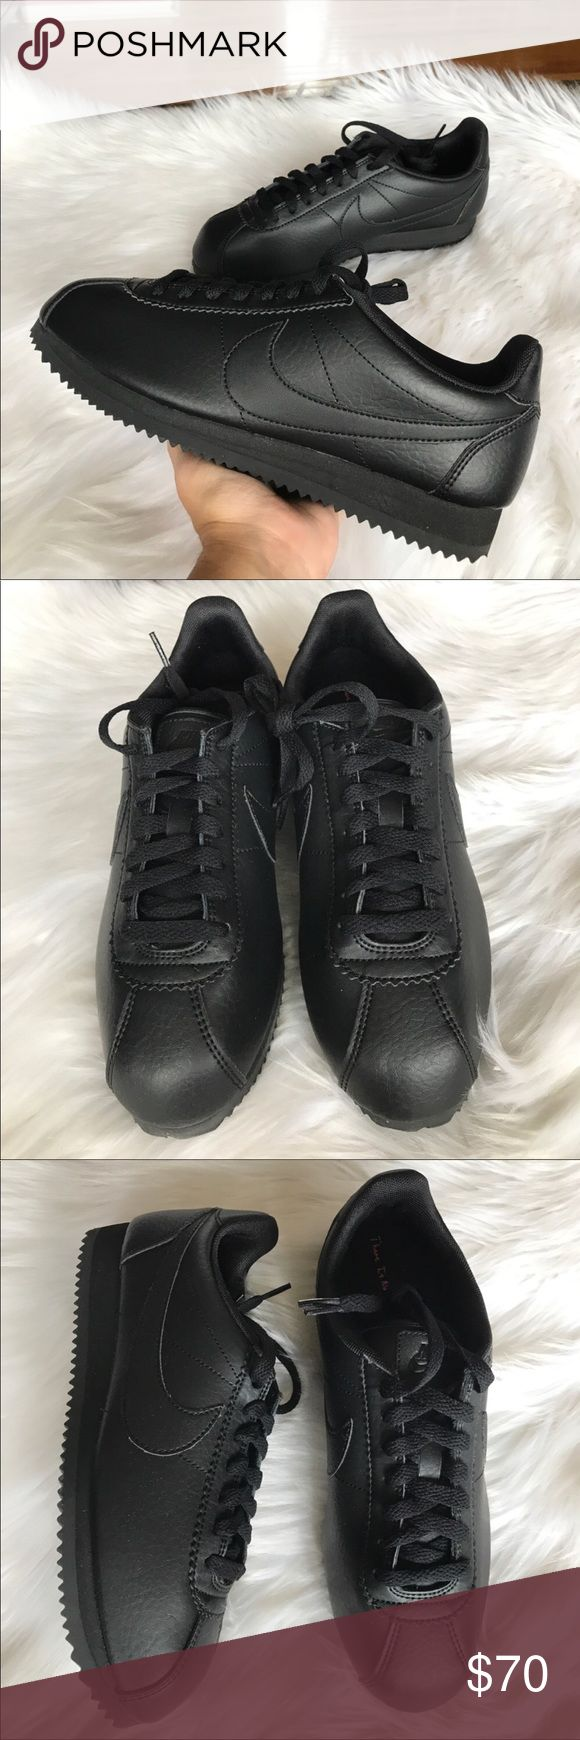 NEW NIKE CLASSIC CORTEZ STR BLACK LEATHER WMNS 8 New in the box all black Nike Classic Cortez Sneakers. Womens size 8. Never worn! Box is missing the lid. Shoes are brand new all black classics. Nike Shoes Sneakers